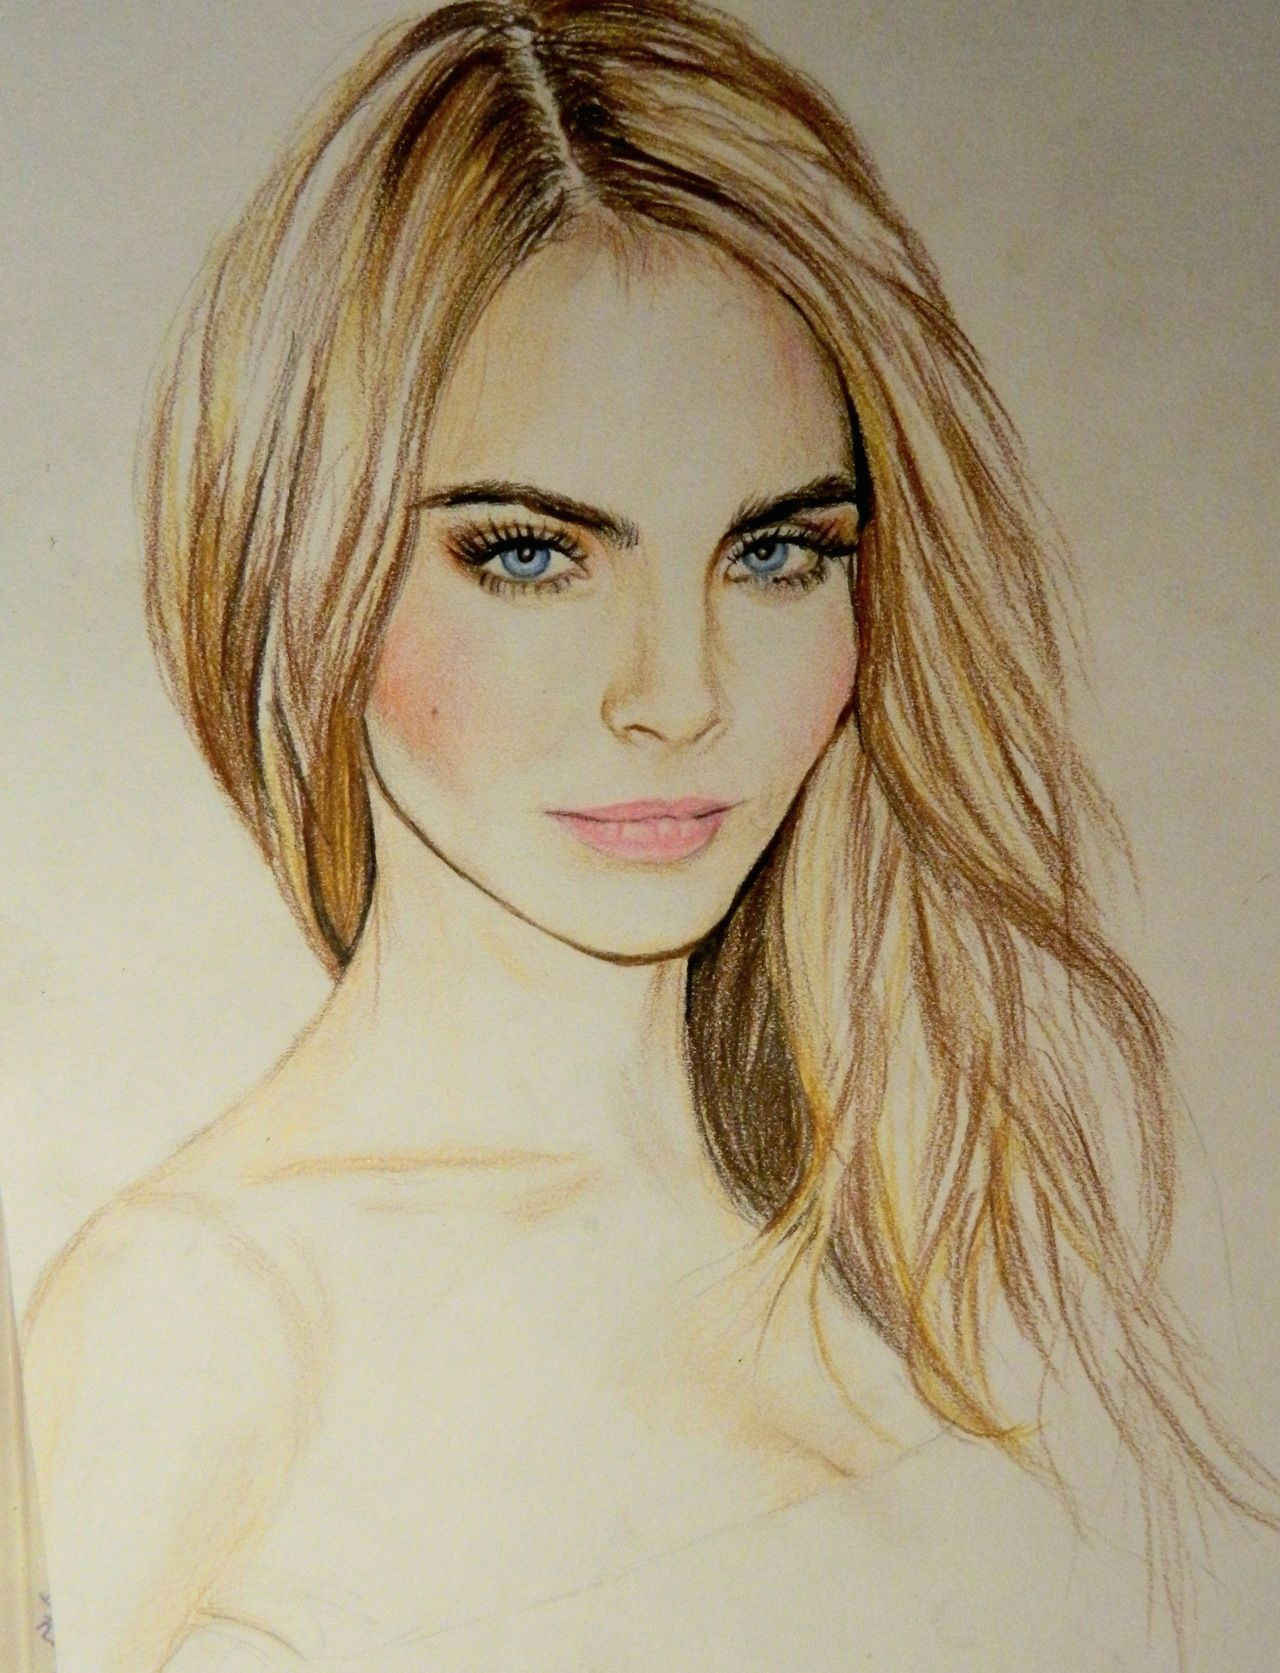 i know it s a drawing but i like the makeup lol